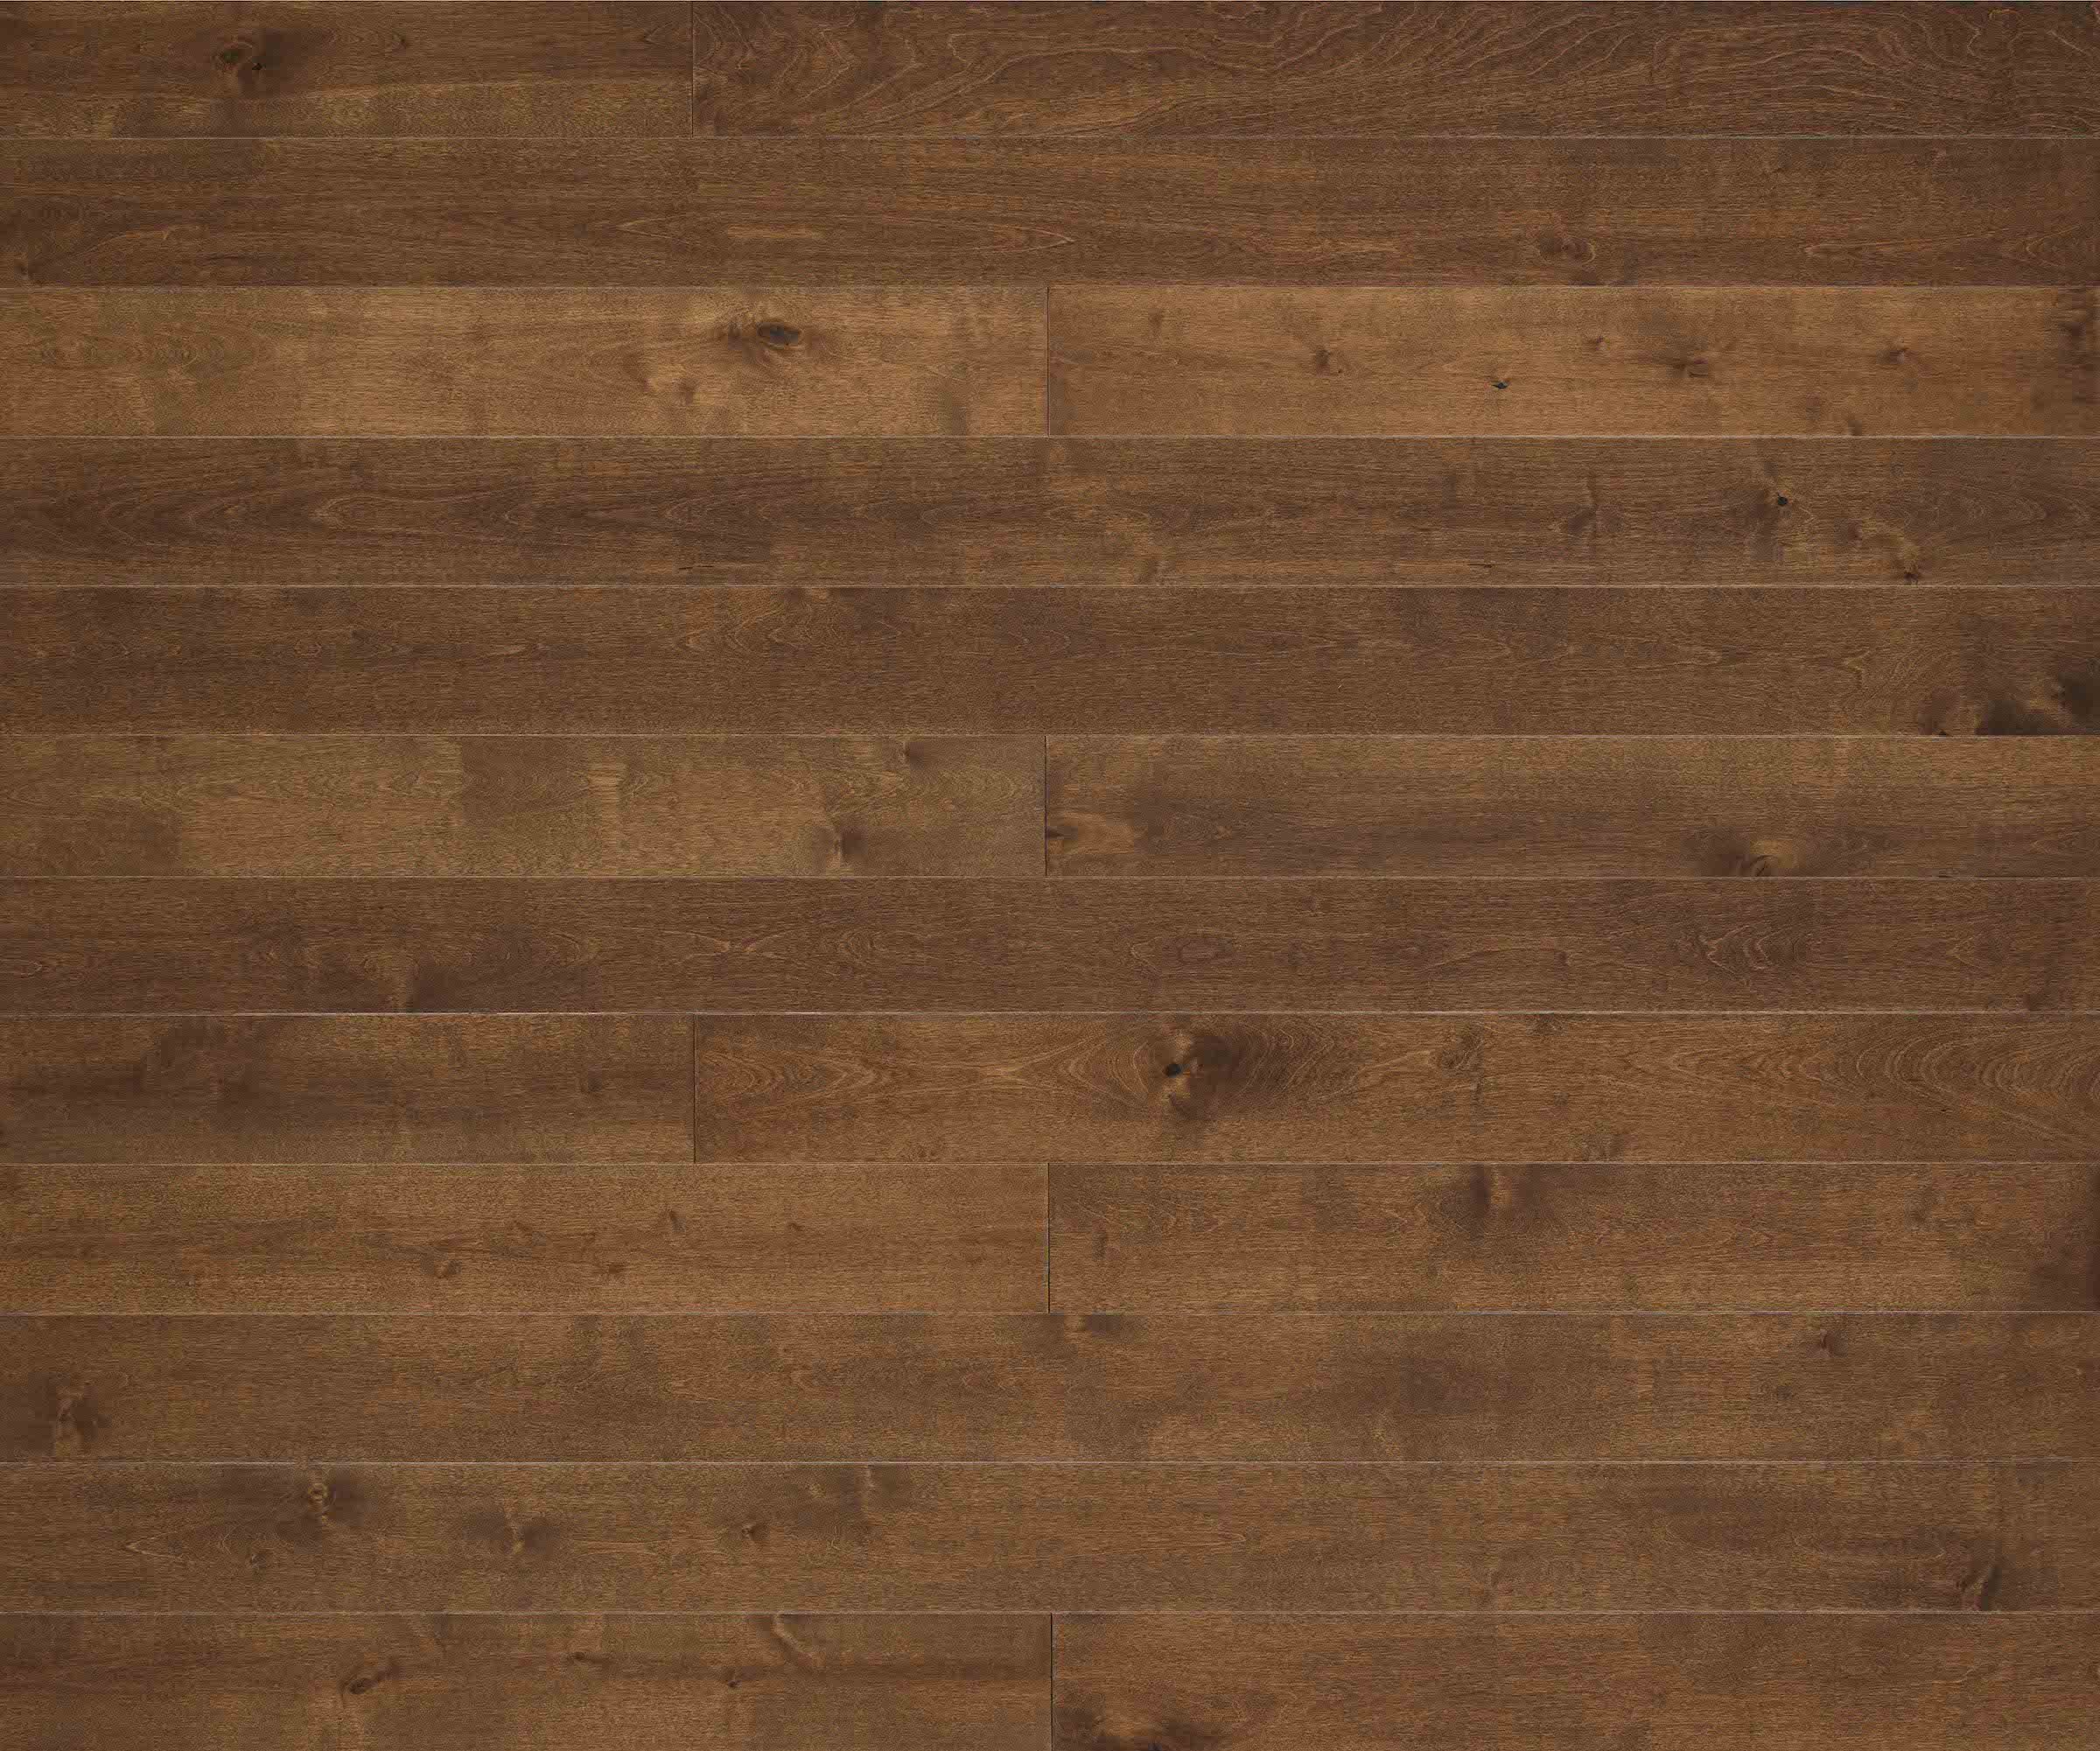 wood flooring texture dormer birch ZITYKPZ